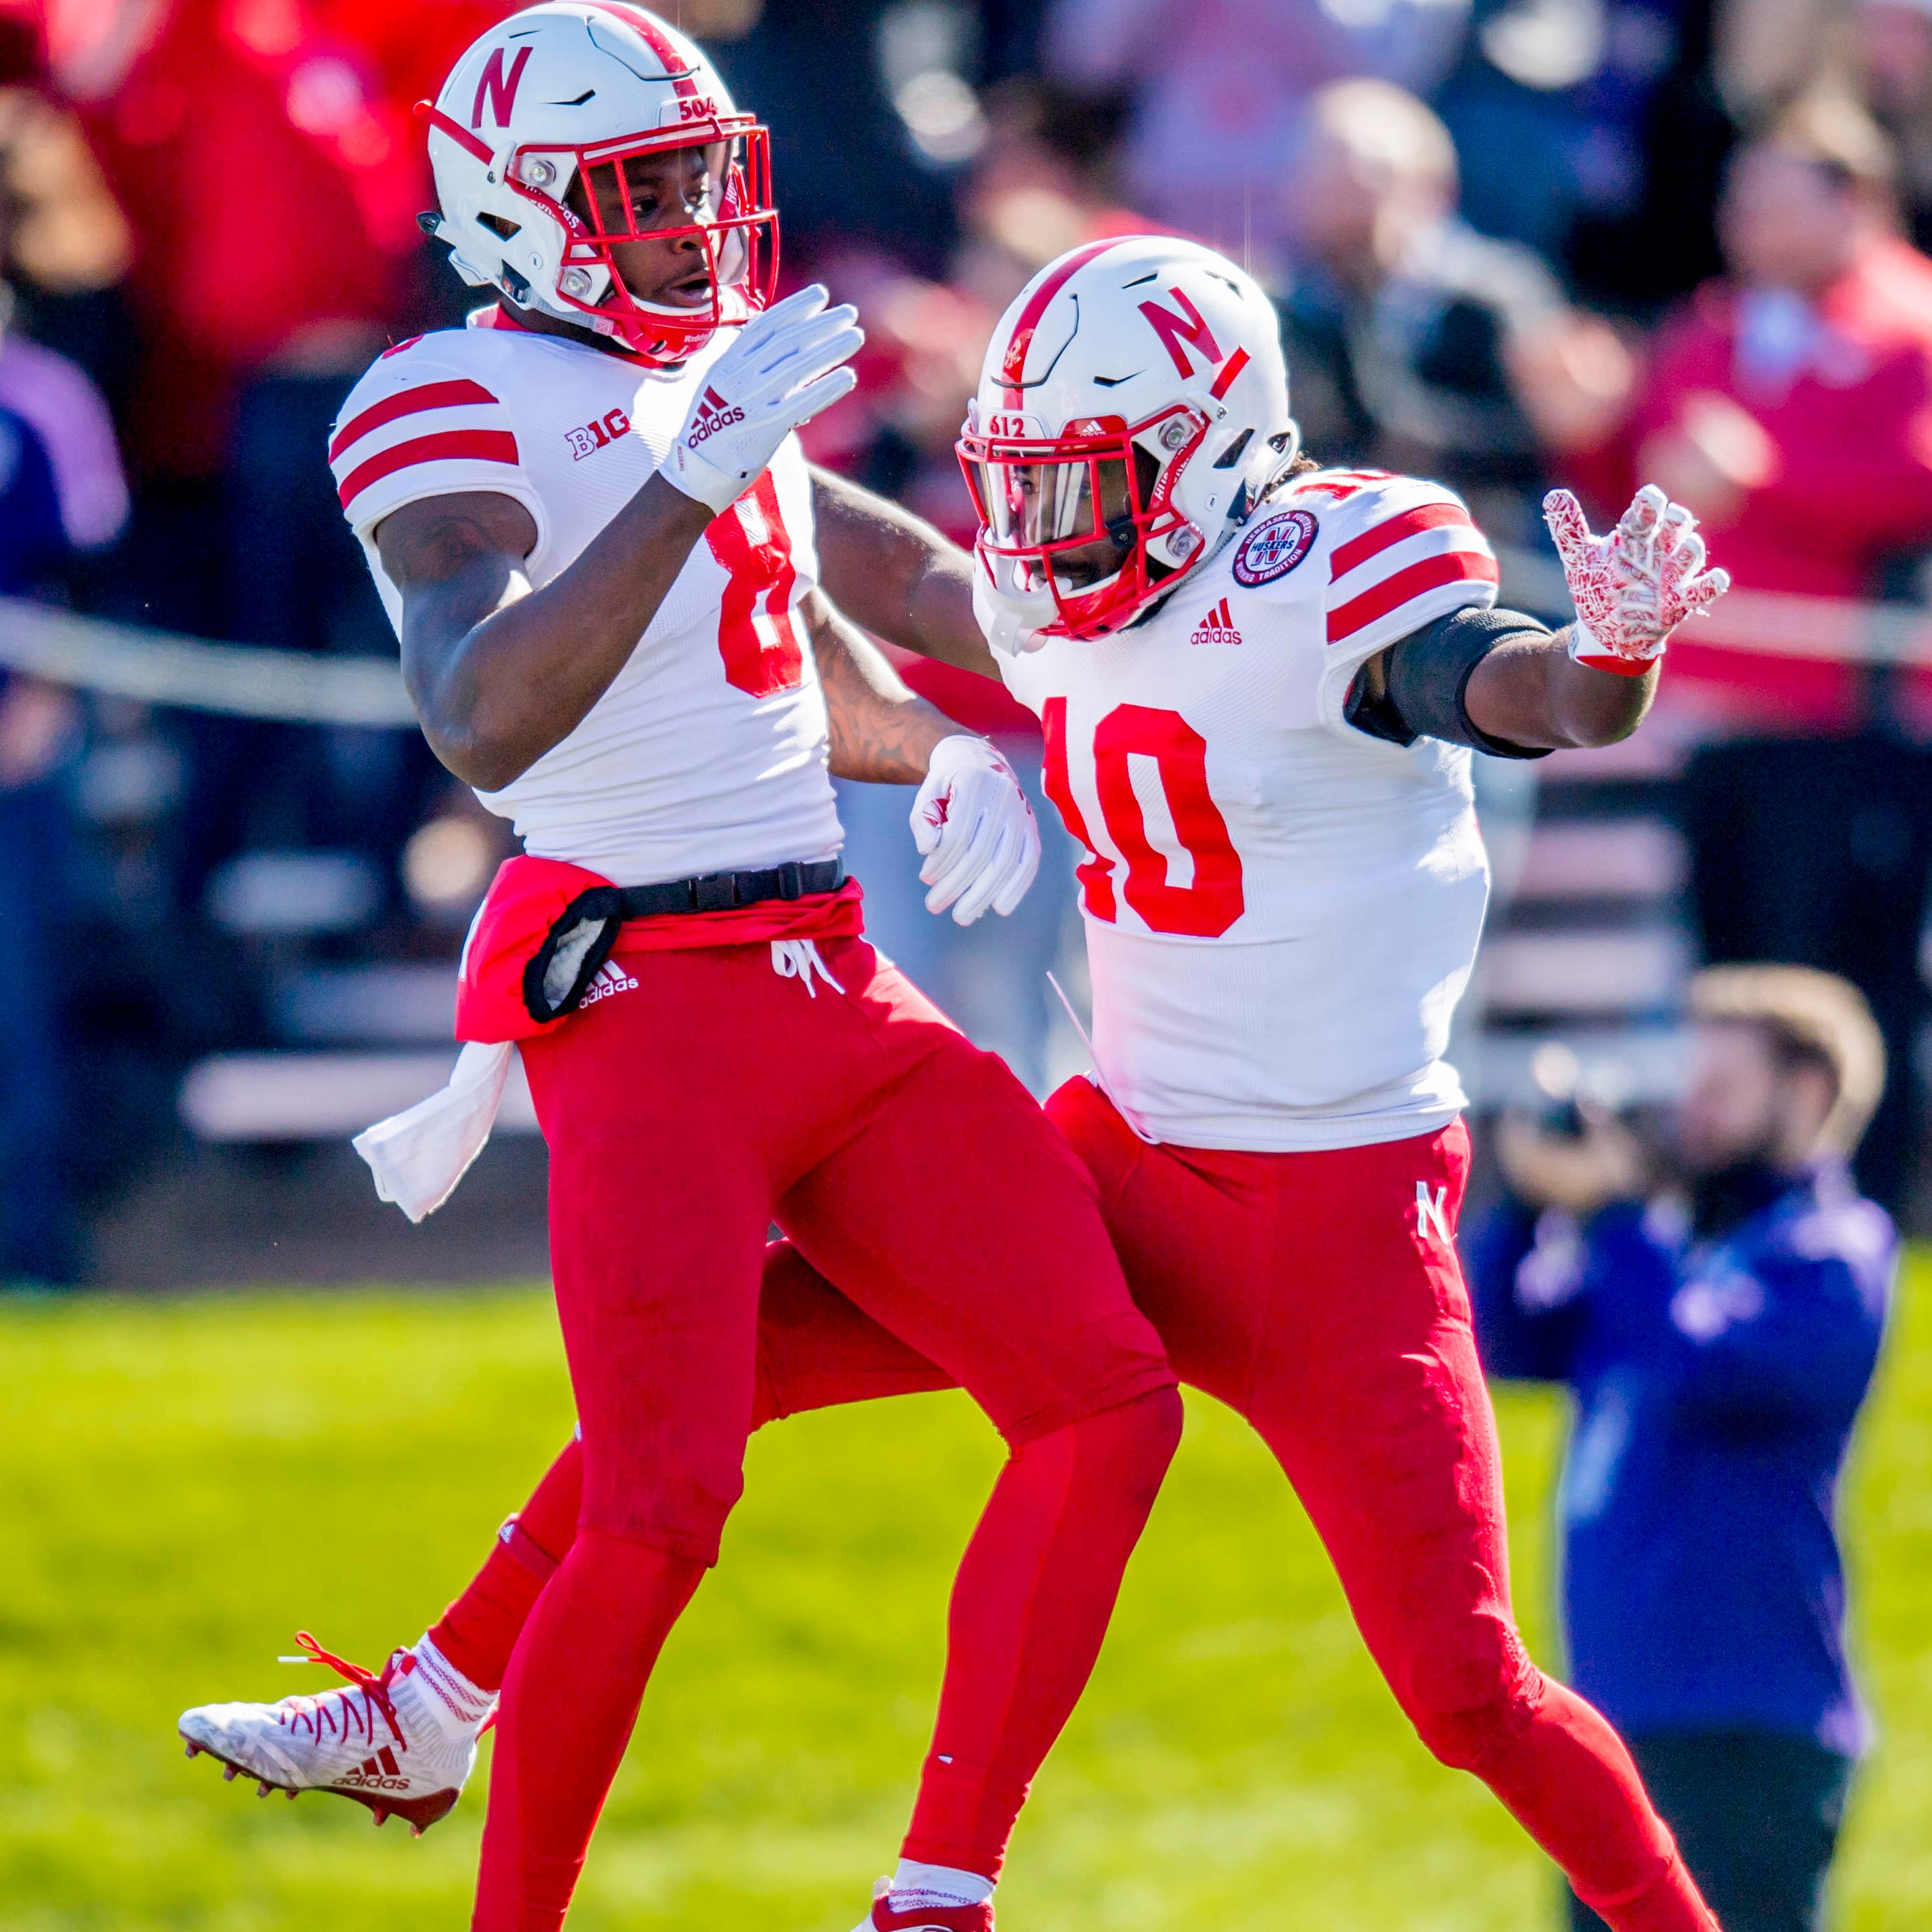 Nebraska wide receiver JD Spielman (10) celebrates his touchdown with wide receiver Stanley Morgan Jr. during the first quarter against Northwestern.